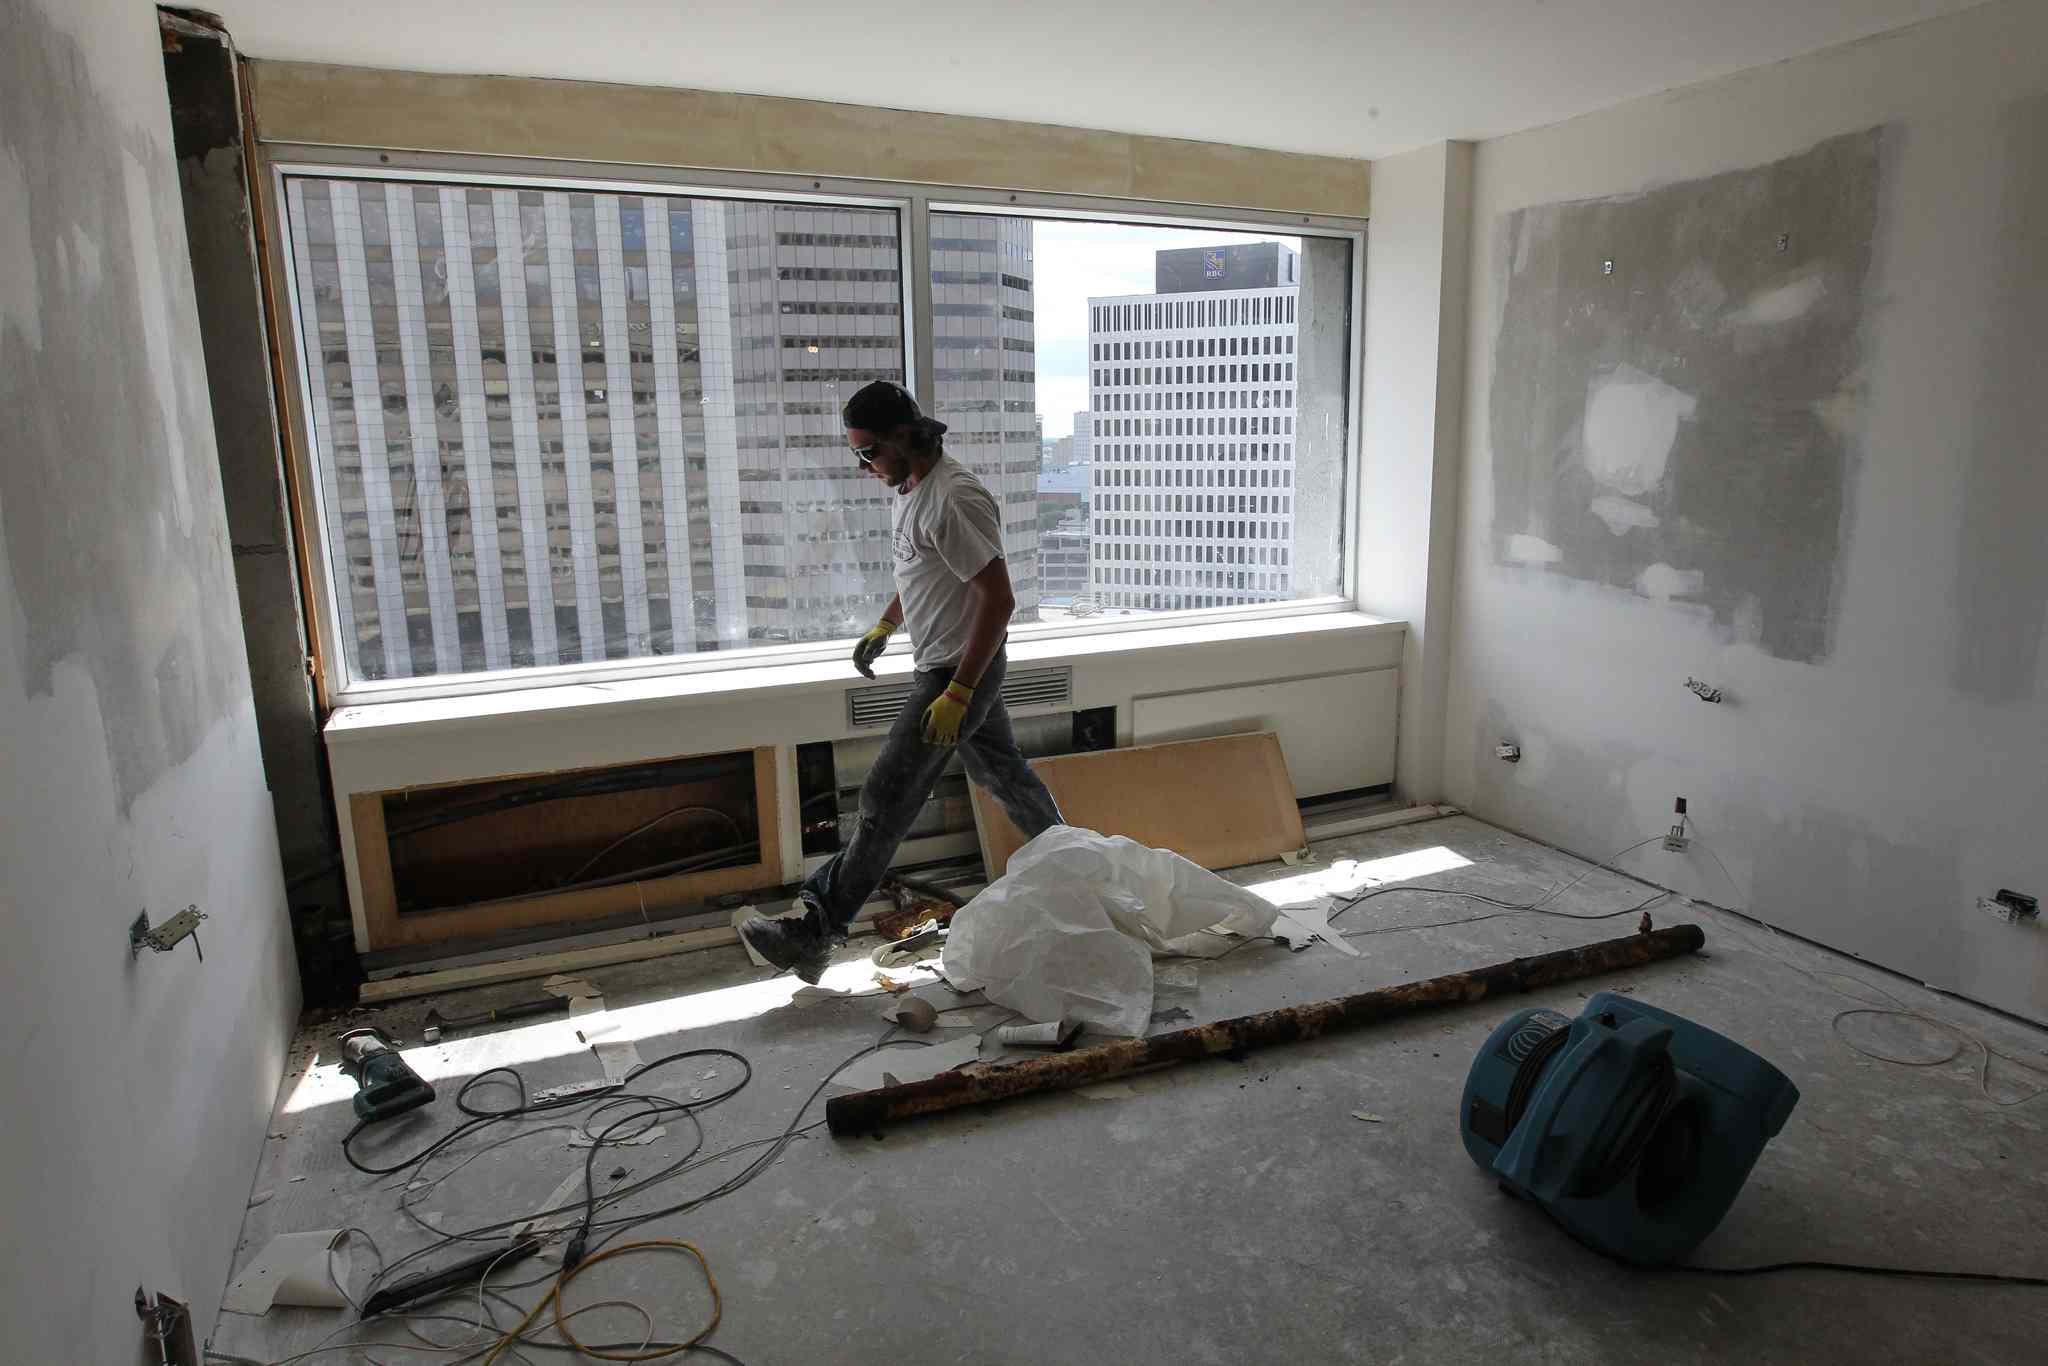 Rooms on three floors of the downtown hotel are getting a top-to-bottom makeover. The work is expected to be finished by the end of September.